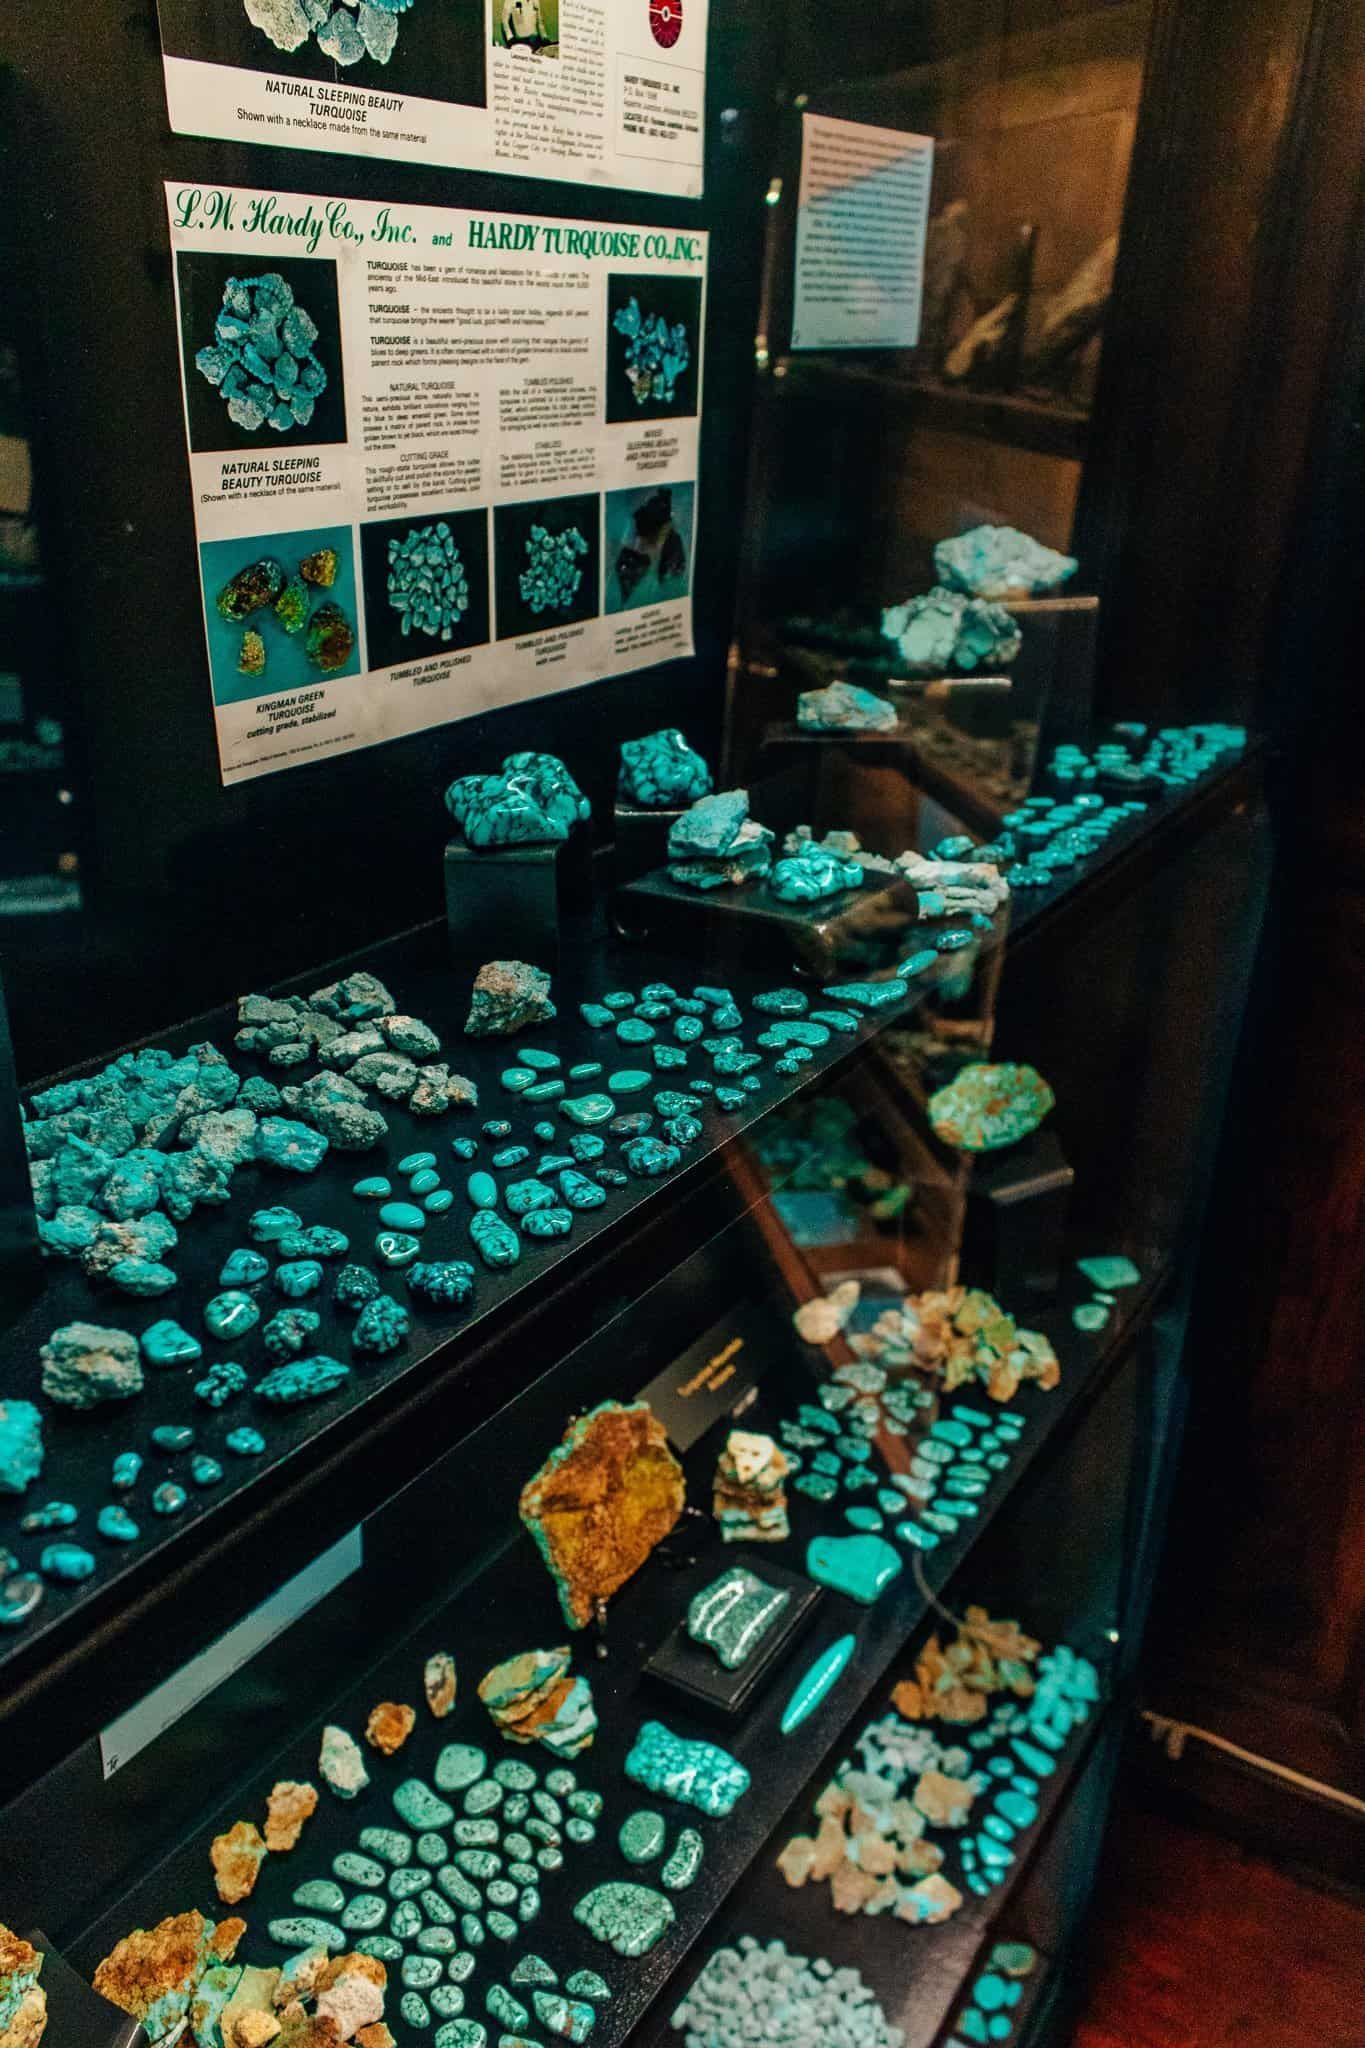 Turquoise Stones at Turquoise Museum - The Next Trip